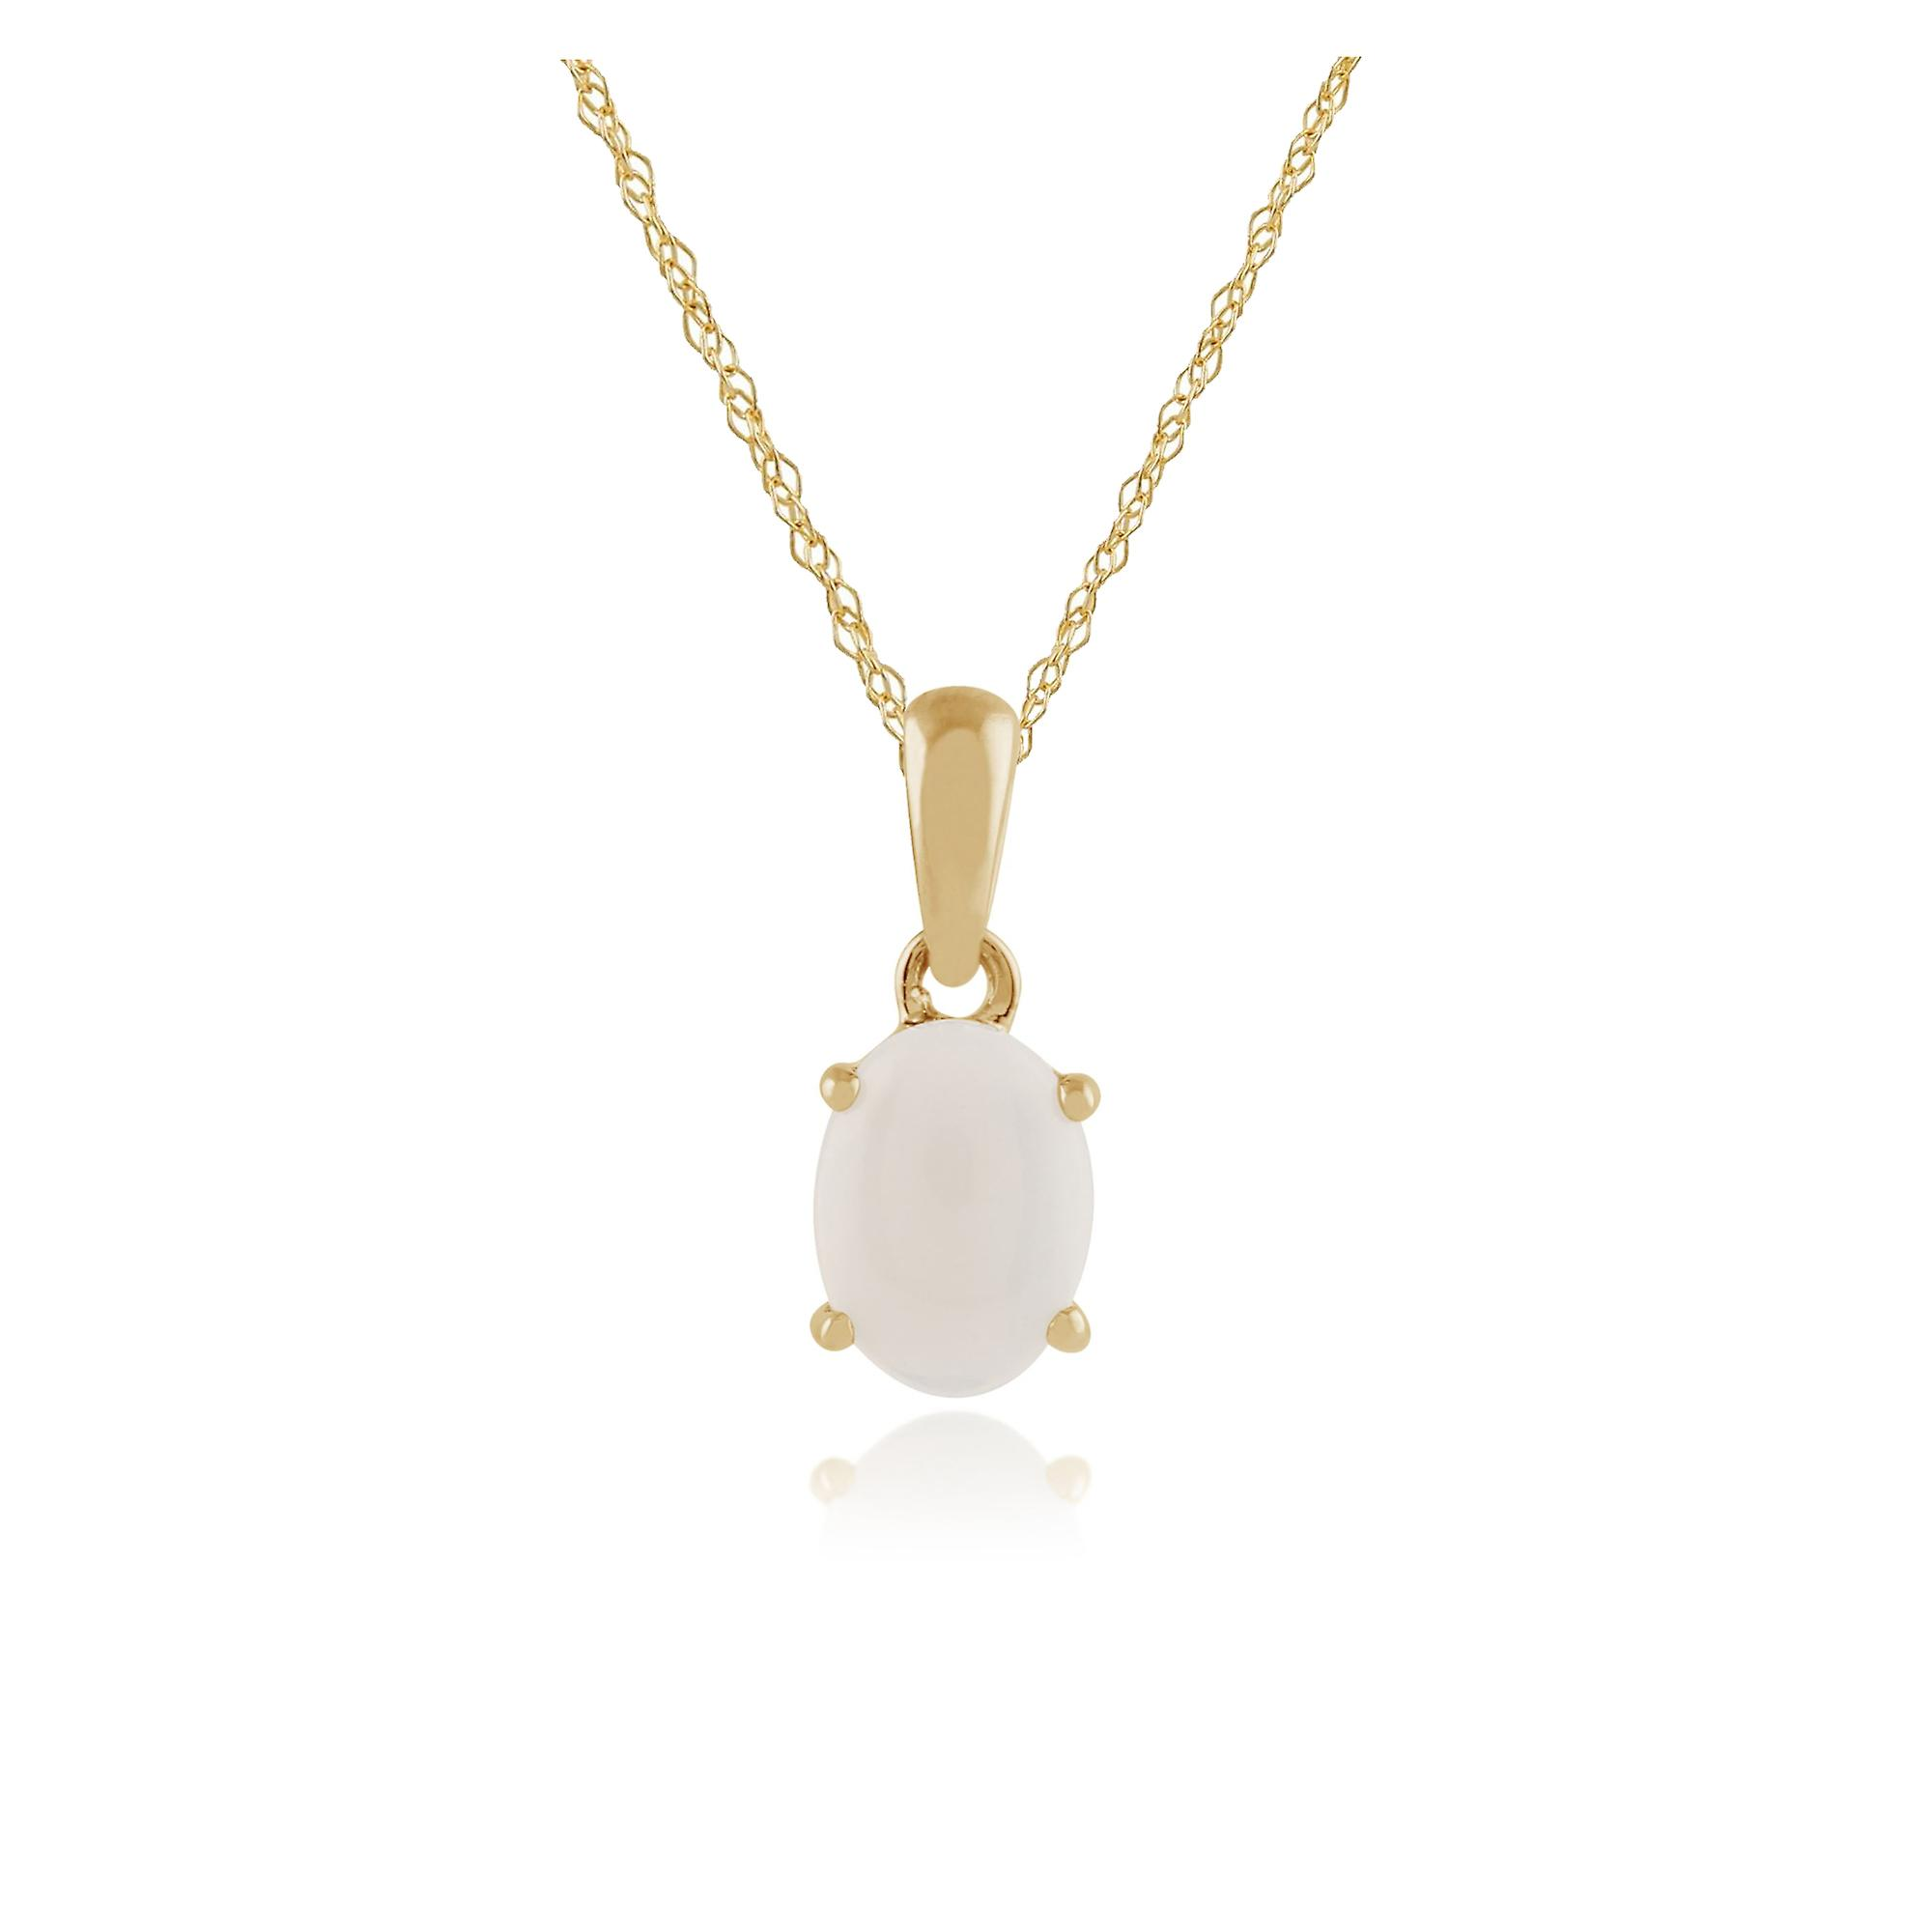 9ct Yellow Gold 0.69ct Opal Oval Cabochon Single Stone Pendant on Chain